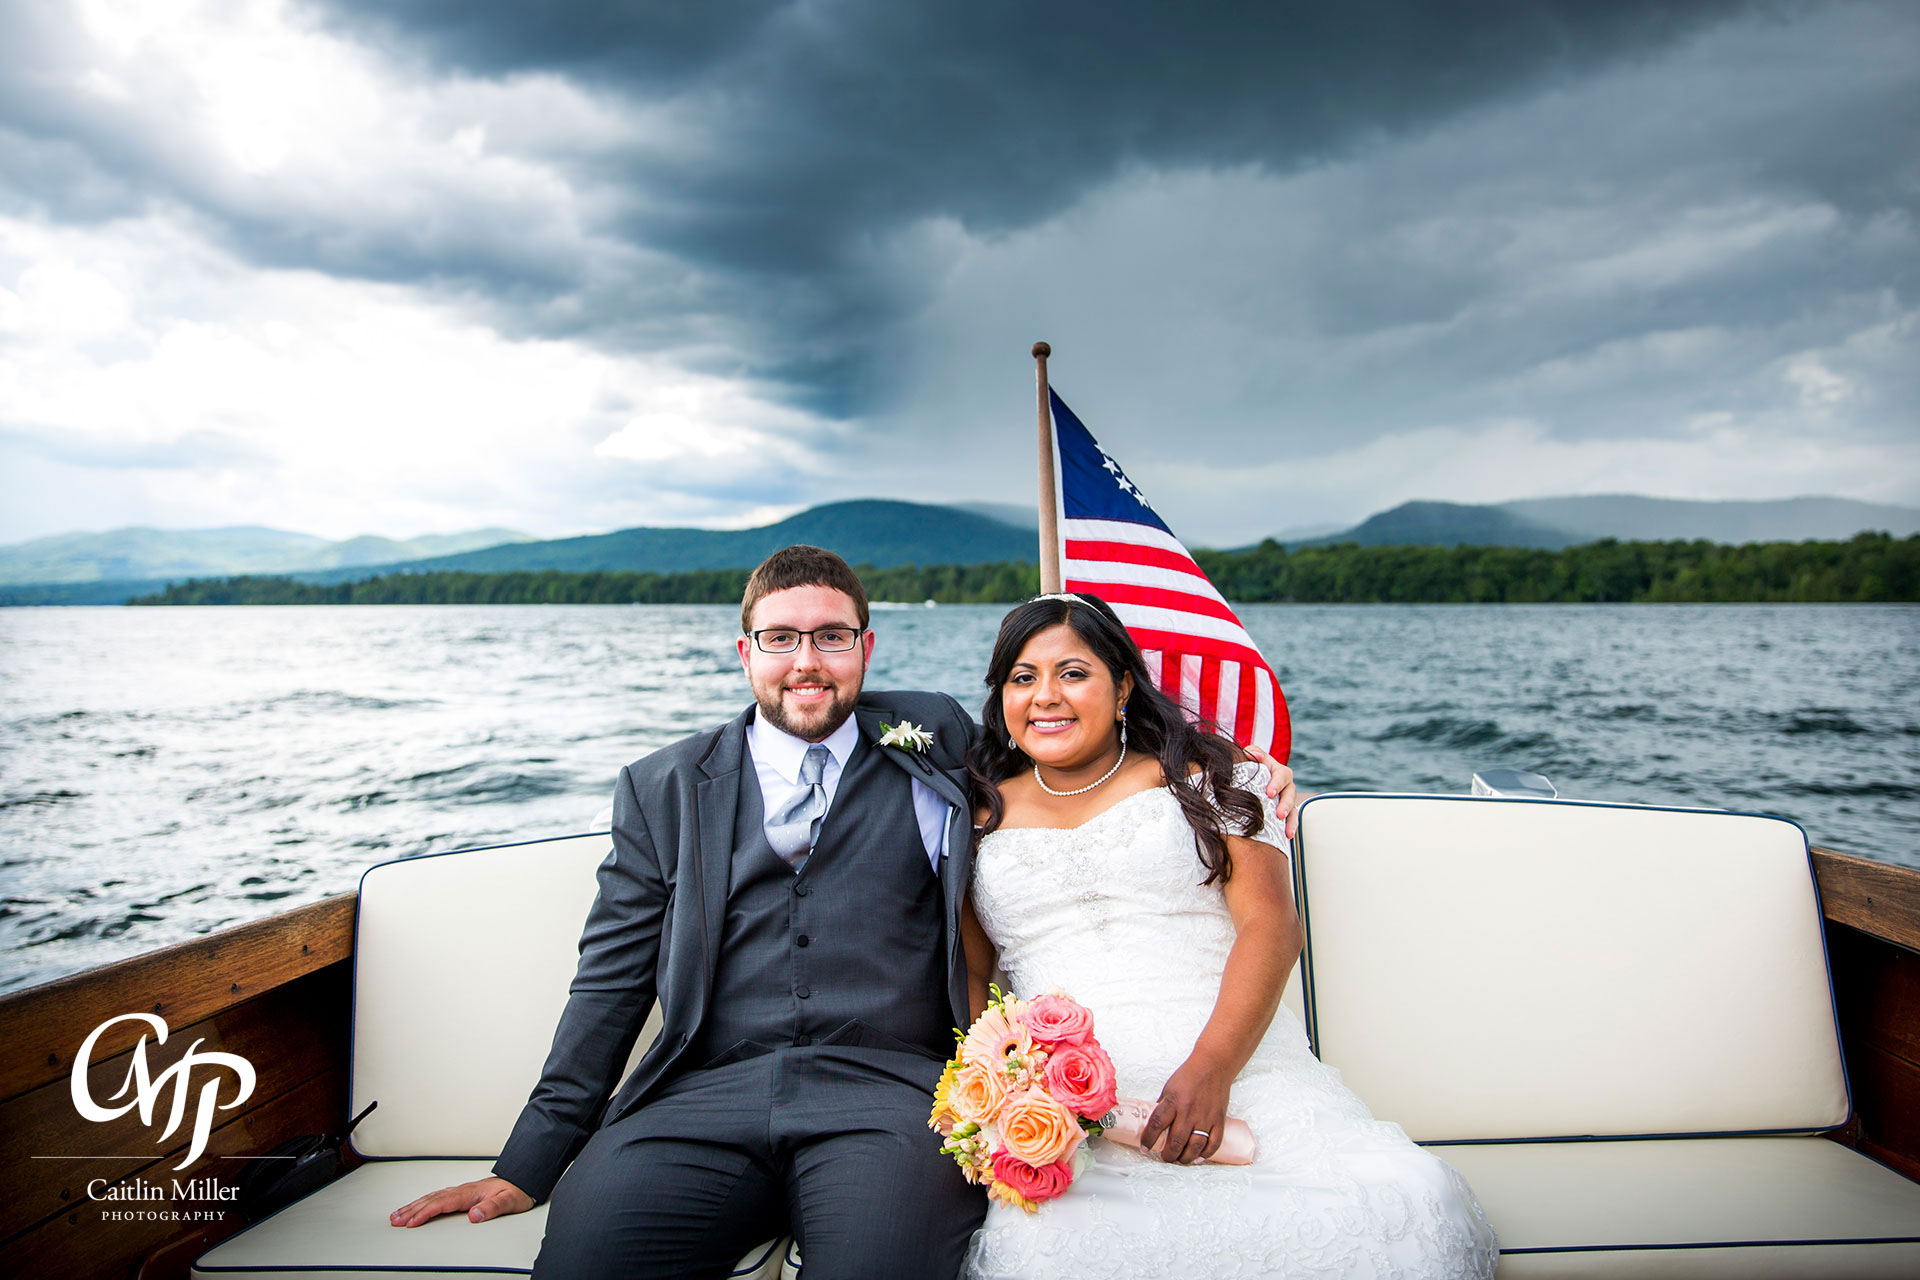 chromik-blogcover.jpg from Juliana and Dan's Lake George wedding at the Sagamore Resort on Lake George, NY by Saratoga Wedding Photographer Caitlin Miller Photography. Lake George Wedding Photographer. Stamford wedding photographer. Albany wedding photographer. Greenwich Wedding Photographer. Saratoga Wedding Photographer